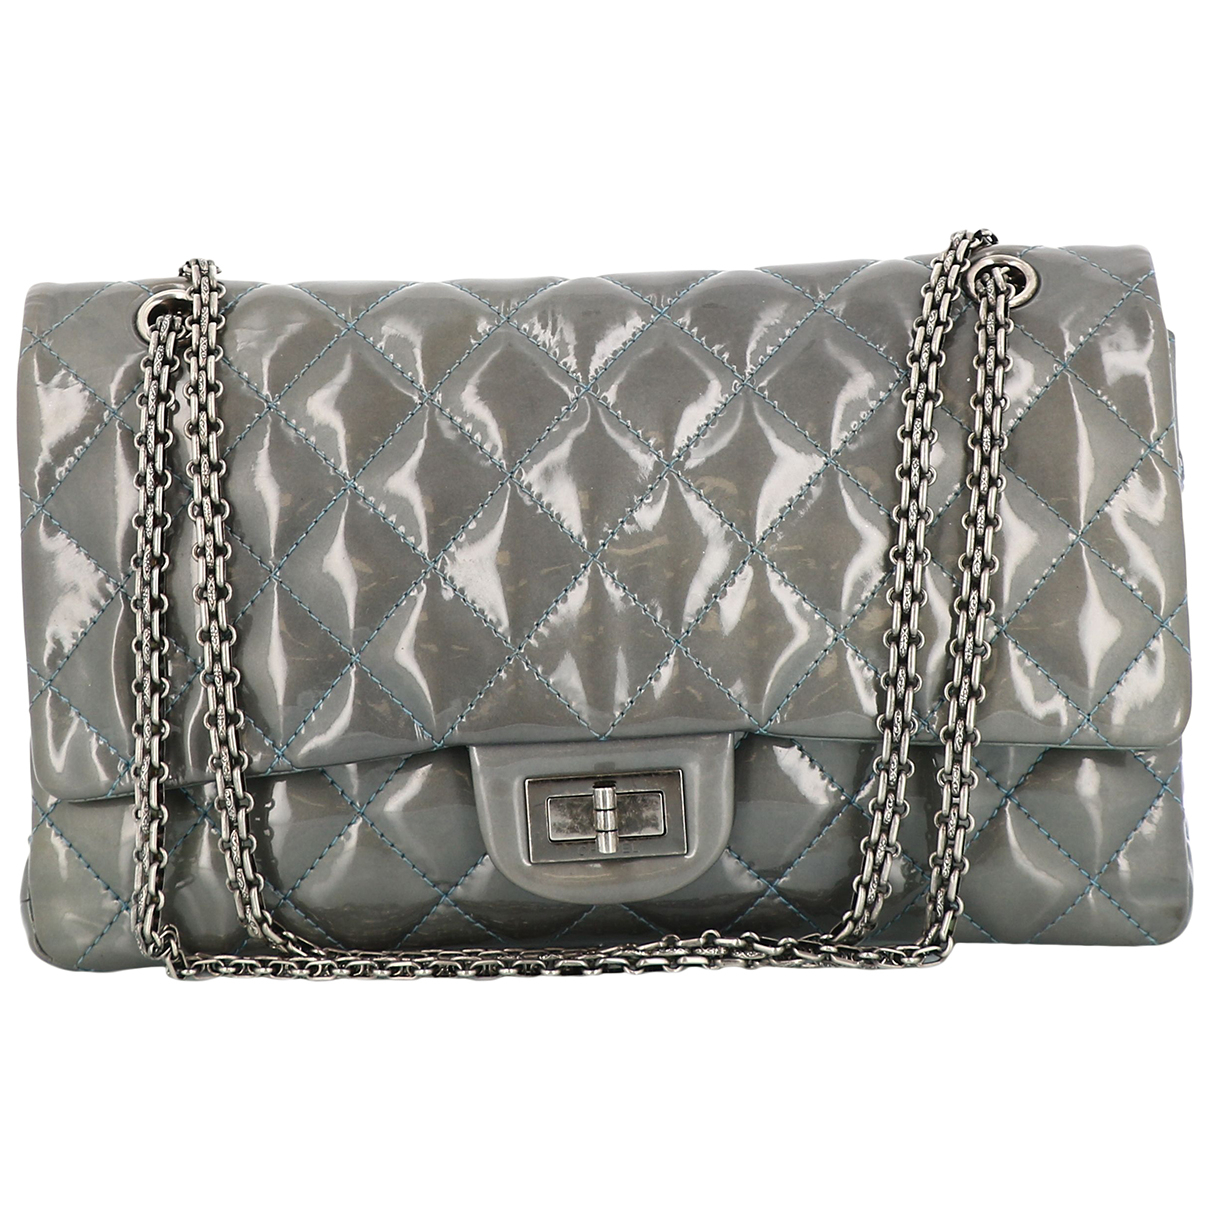 Chanel 2.55 Handtasche in  Grau Lackleder